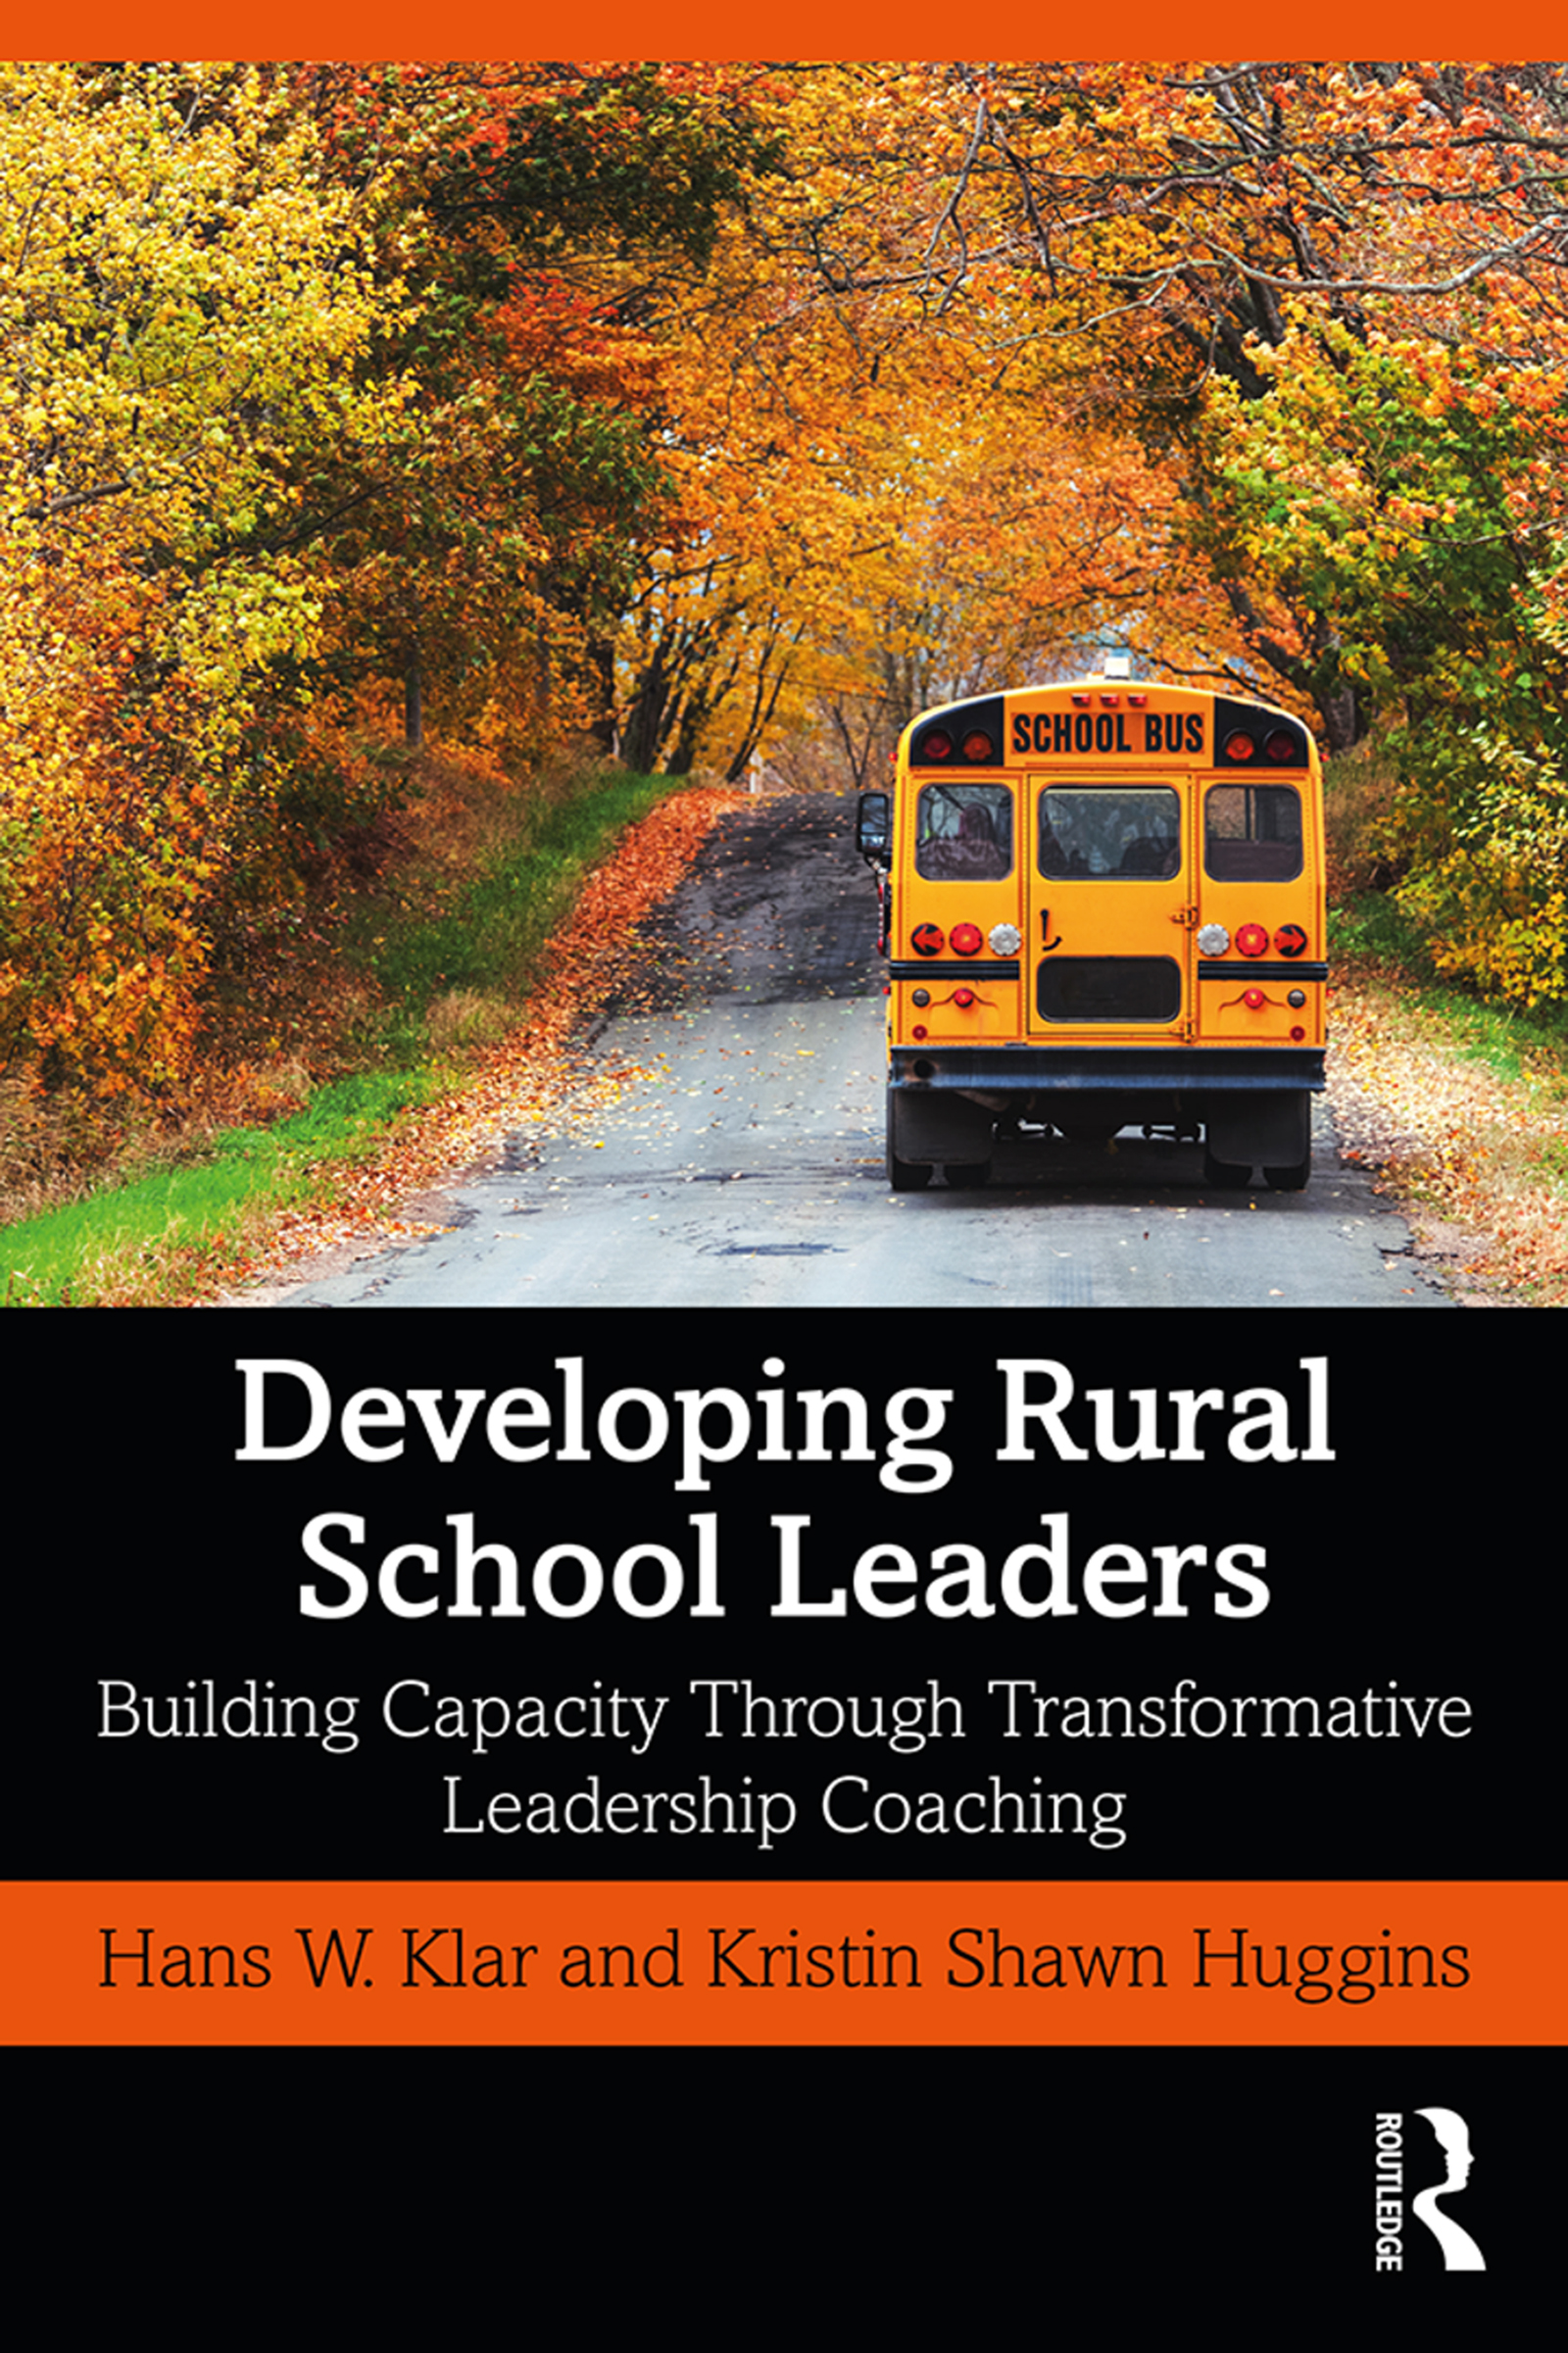 Learning to Improve the Culture of Teaching and Learning to Increase Teacher Leadership